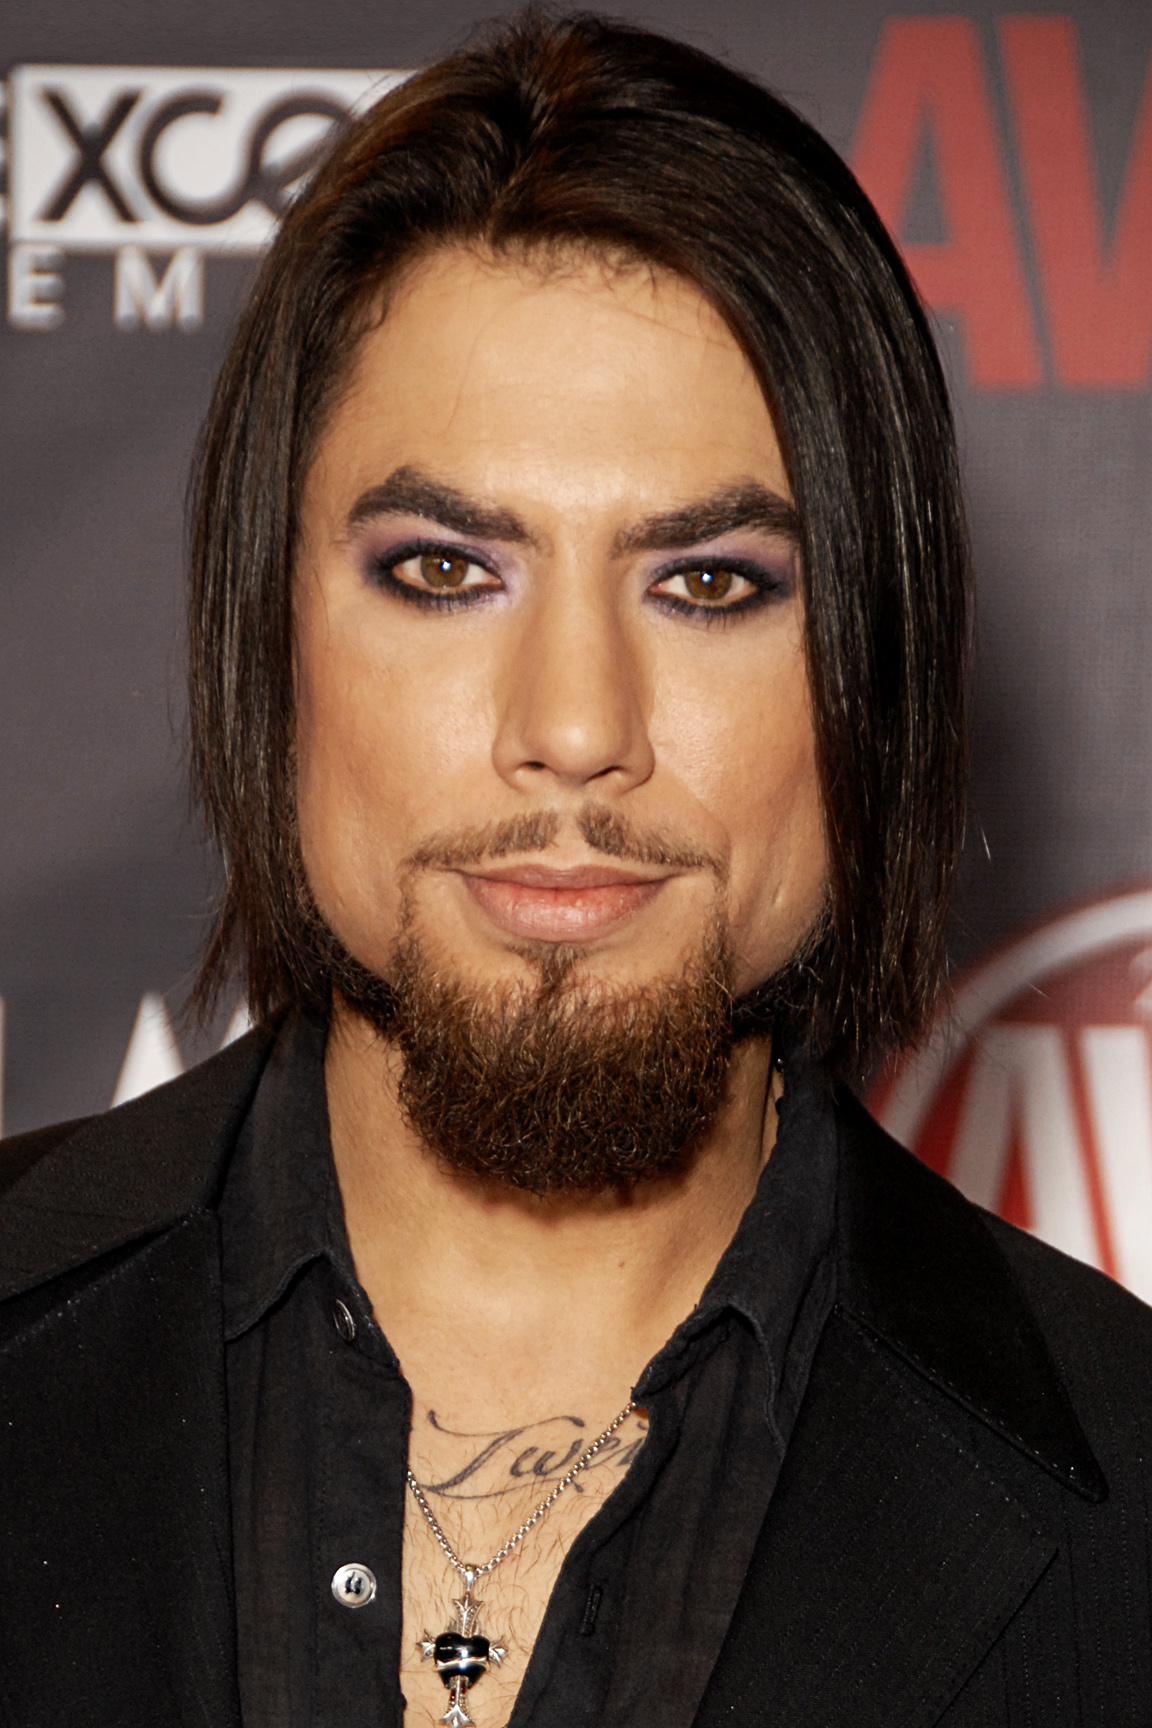 The 51-year old son of father (?) and mother(?) Dave Navarro in 2018 photo. Dave Navarro earned a  million dollar salary - leaving the net worth at 25 million in 2018